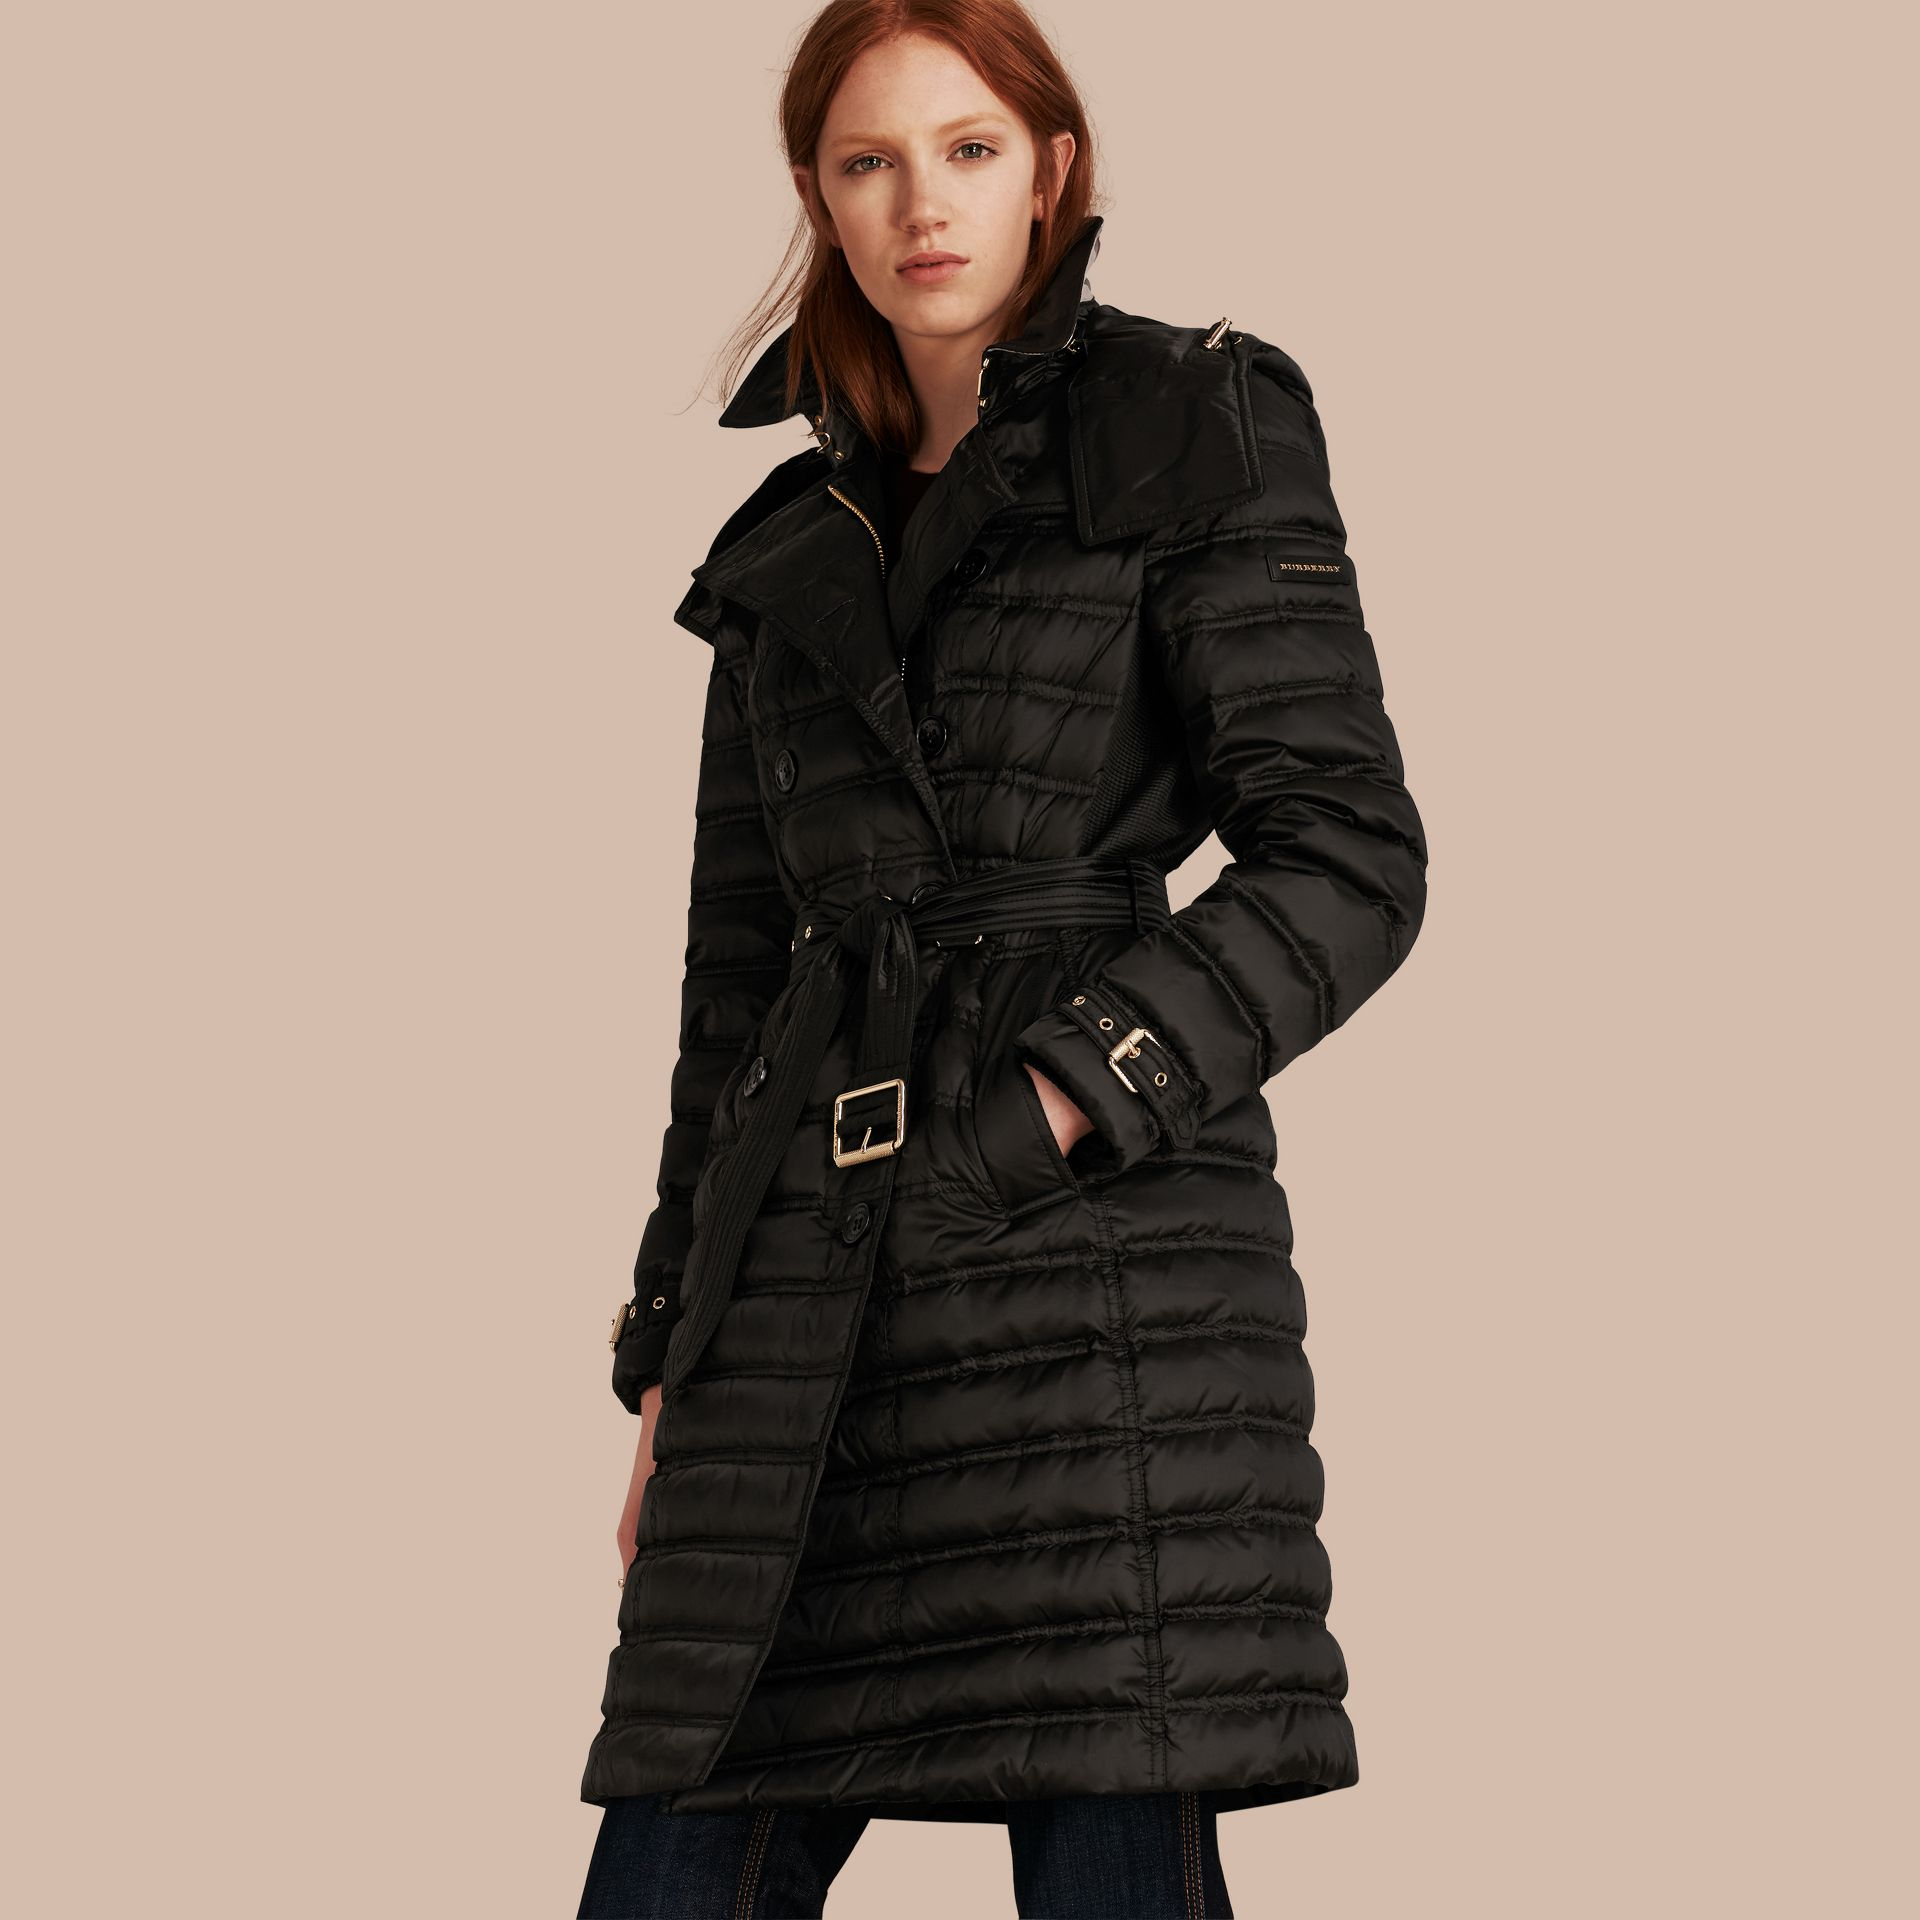 Black Down-filled Puffer Coat with Detachable Hood Black - gallery image 1